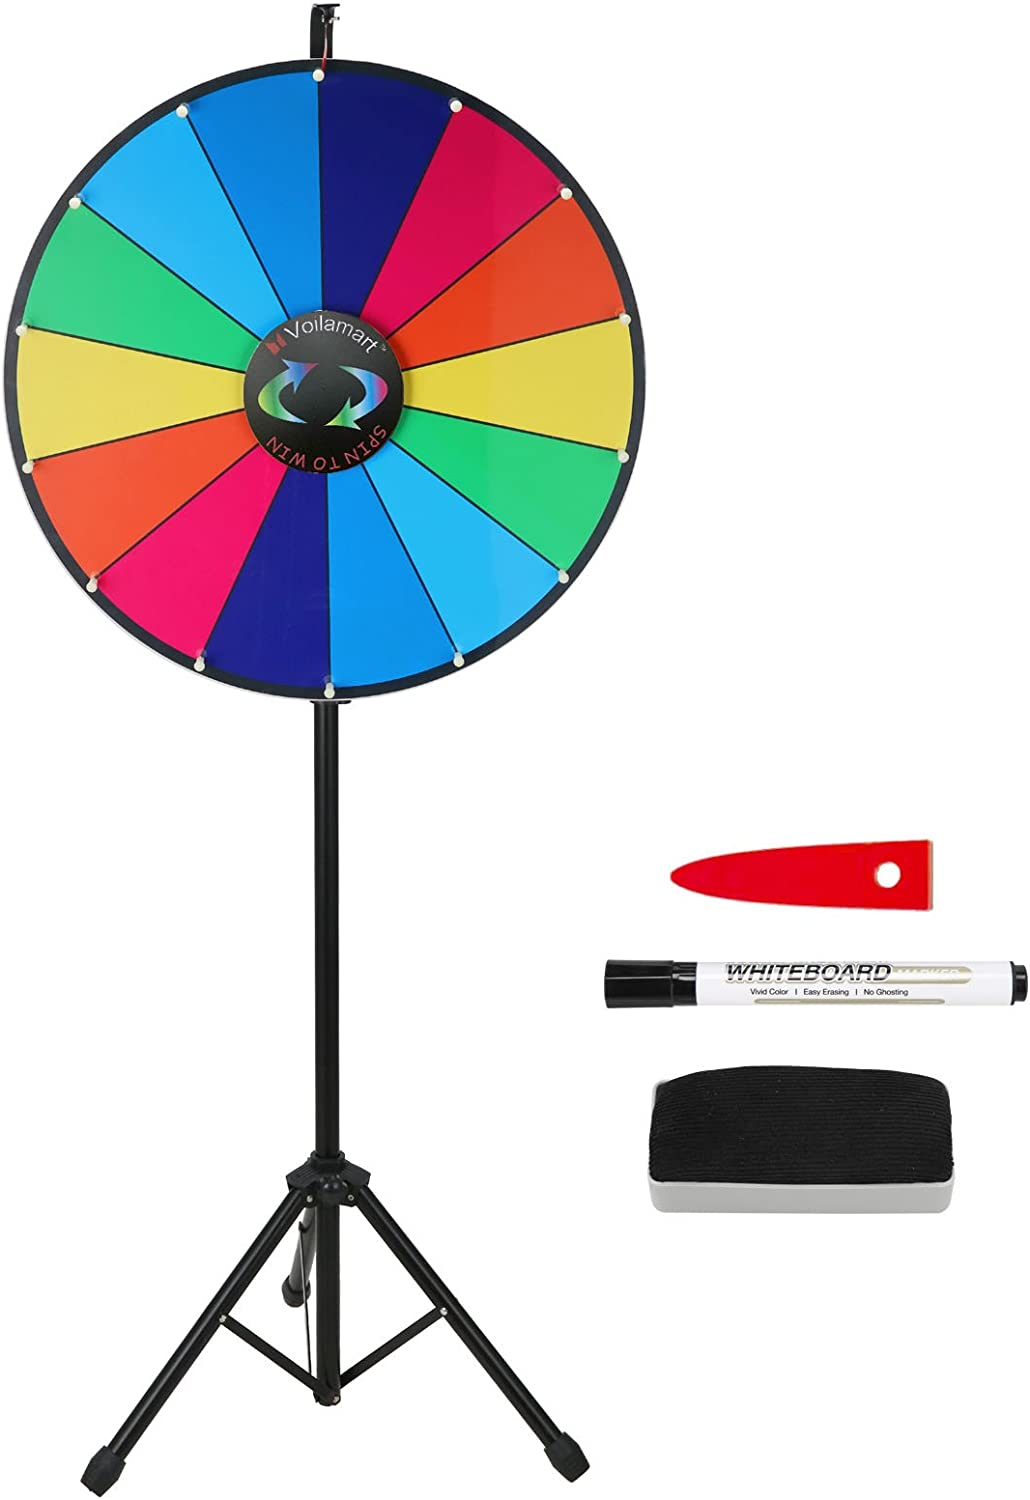 Voilamrt 24 Inch Prize Wheel with Stand Floor Tripod Folding Reservation Hei Special Campaign